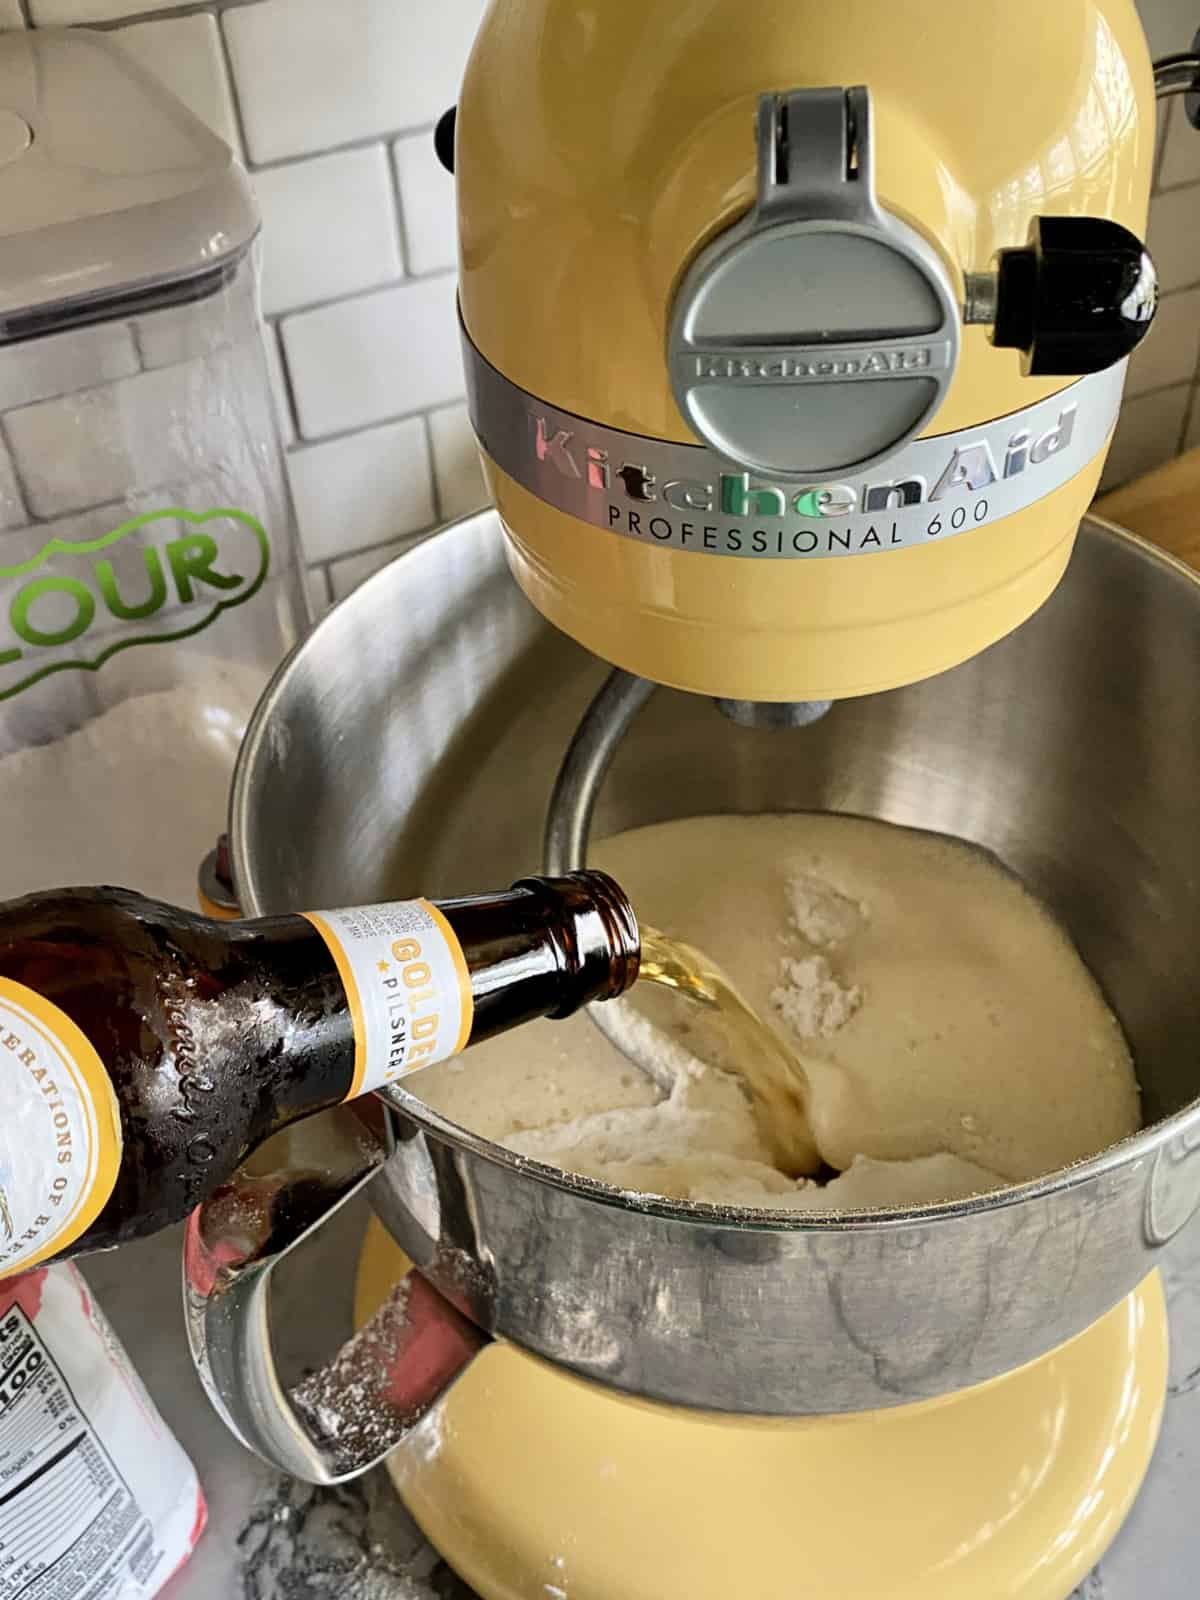 Pouring beer into beer bread batter in a mixing bowl